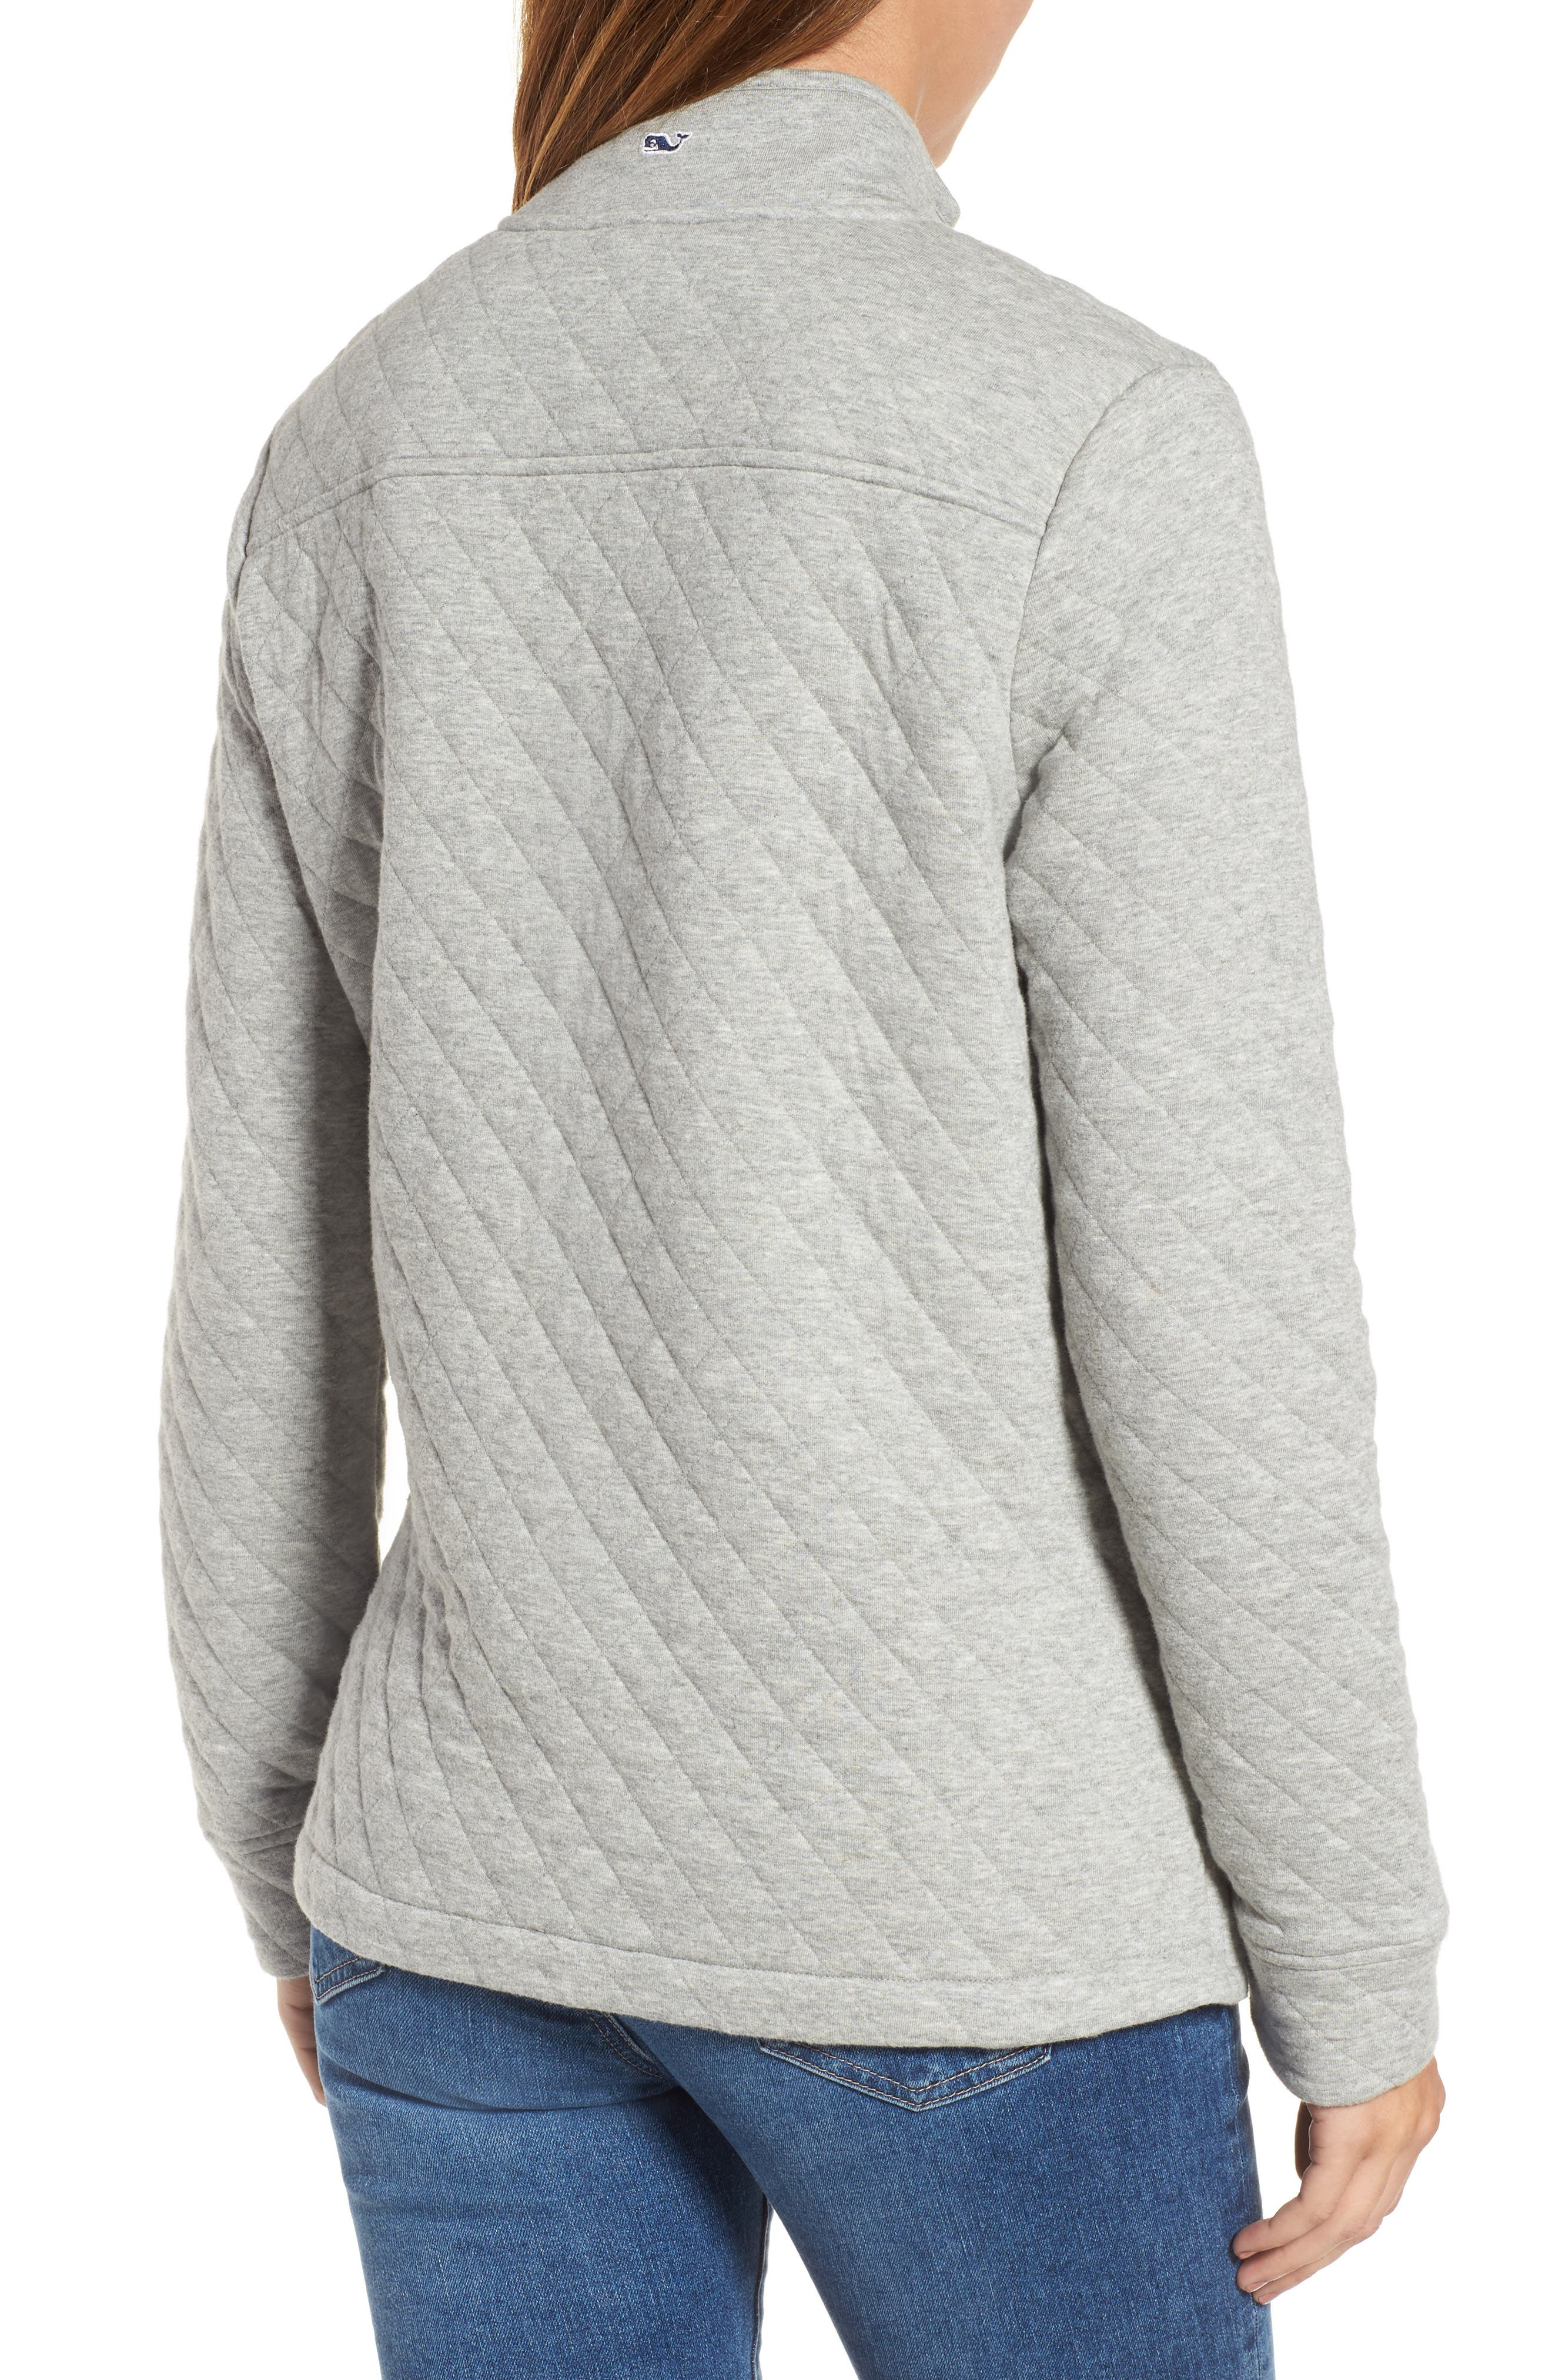 Shep Quilted Quarter Zip Pullover,                             Alternate thumbnail 2, color,                             039